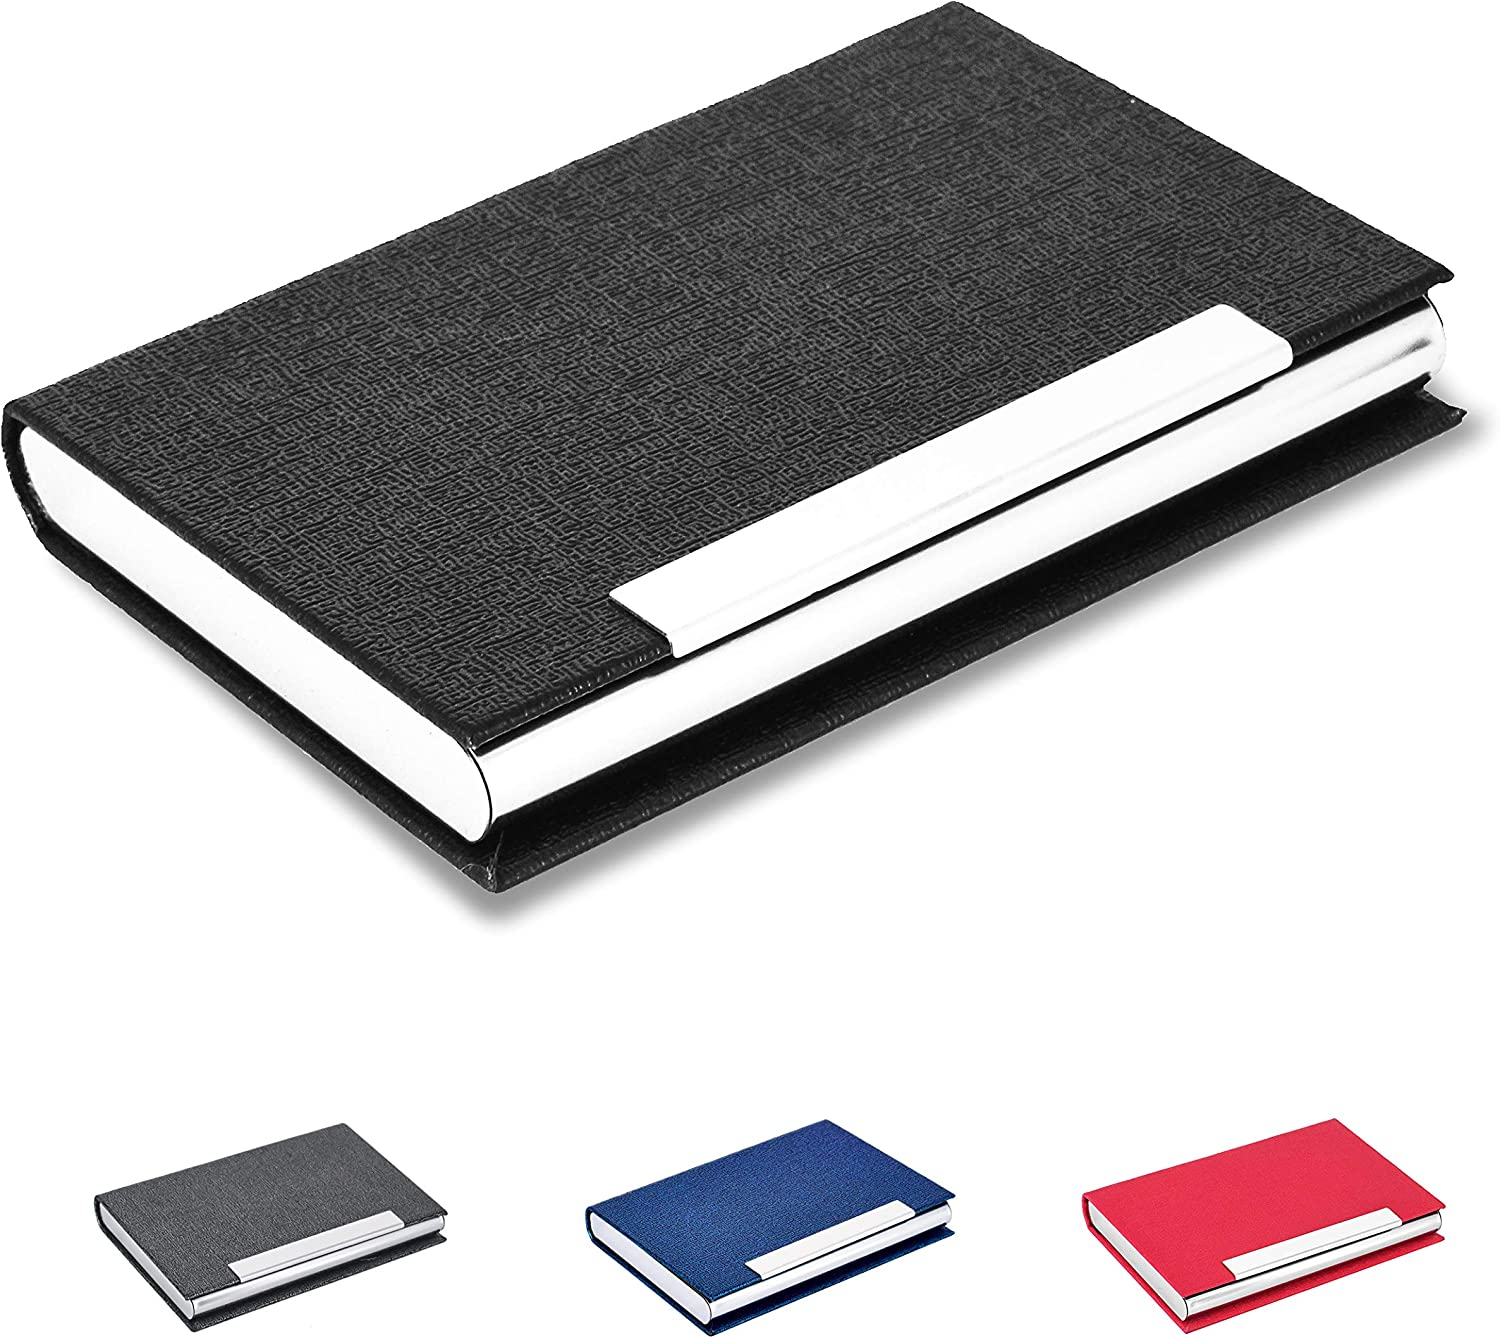 MaxGear Business Card Holder Business Card Case PU Leather and Stainless Steel Card Holder for Men and Women with Magnetic Shut Keep Business Cards Clean,Black